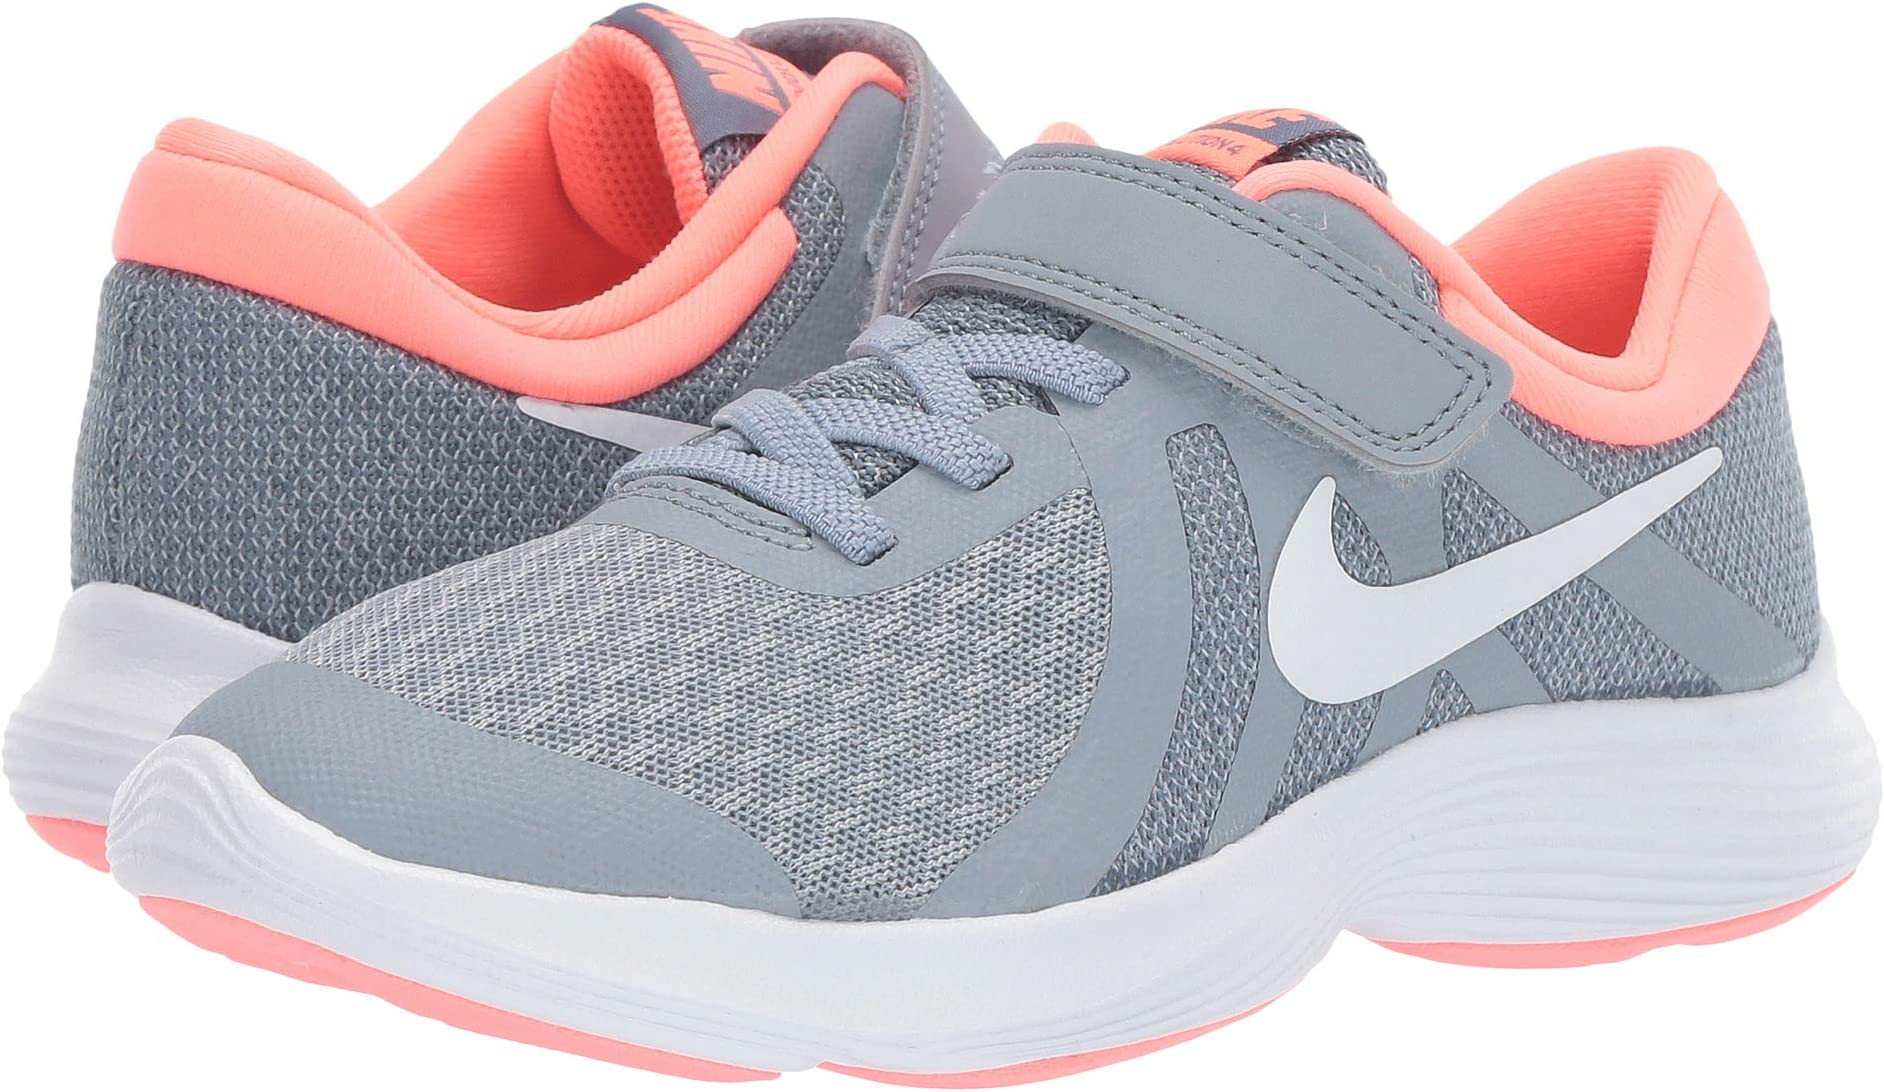 74b07894ea6e Nike Shoes, Activewear, Accessories | Zappos.com